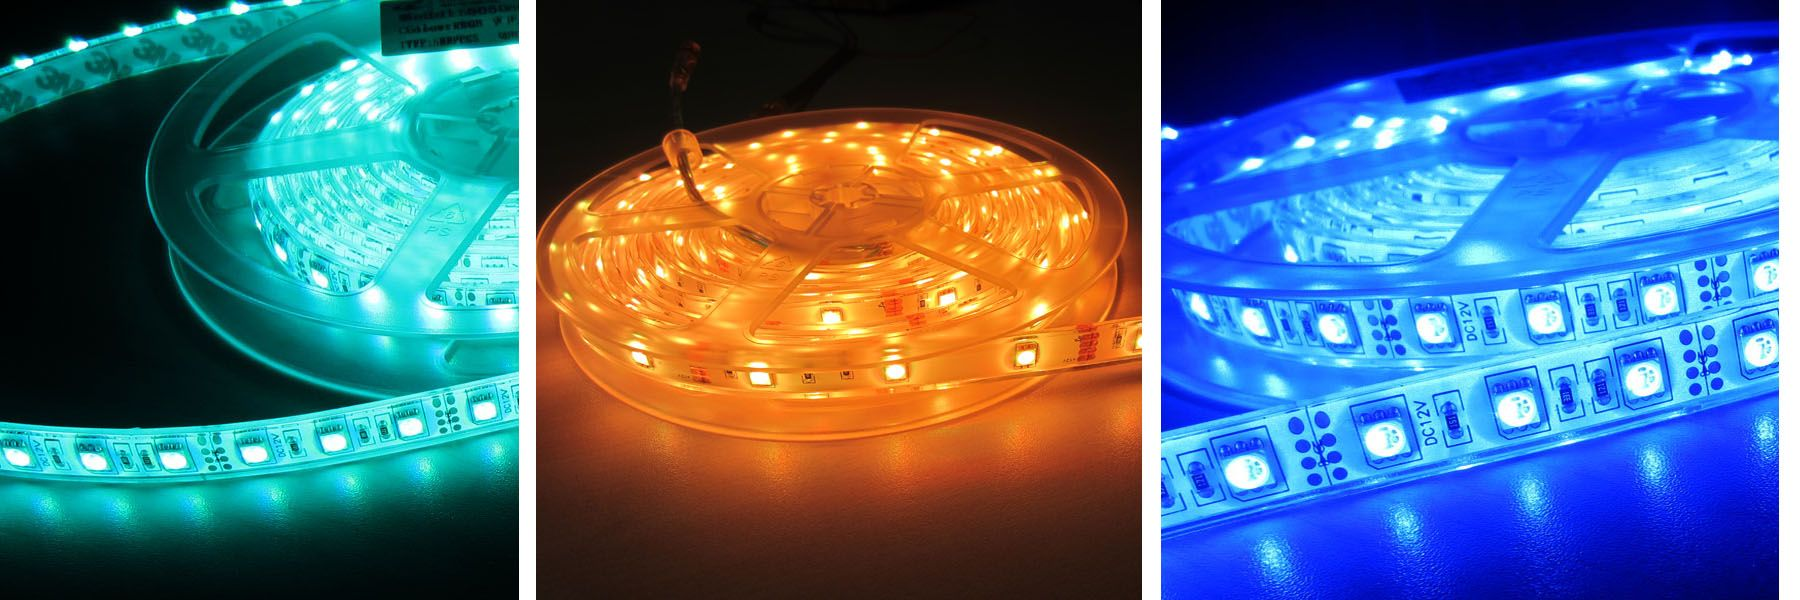 small resolution of dmx 2 wires small led thin rope light led flexible neon lamp manufacturer from shenzhen china aa1b2f01 5050 led strip light oem product